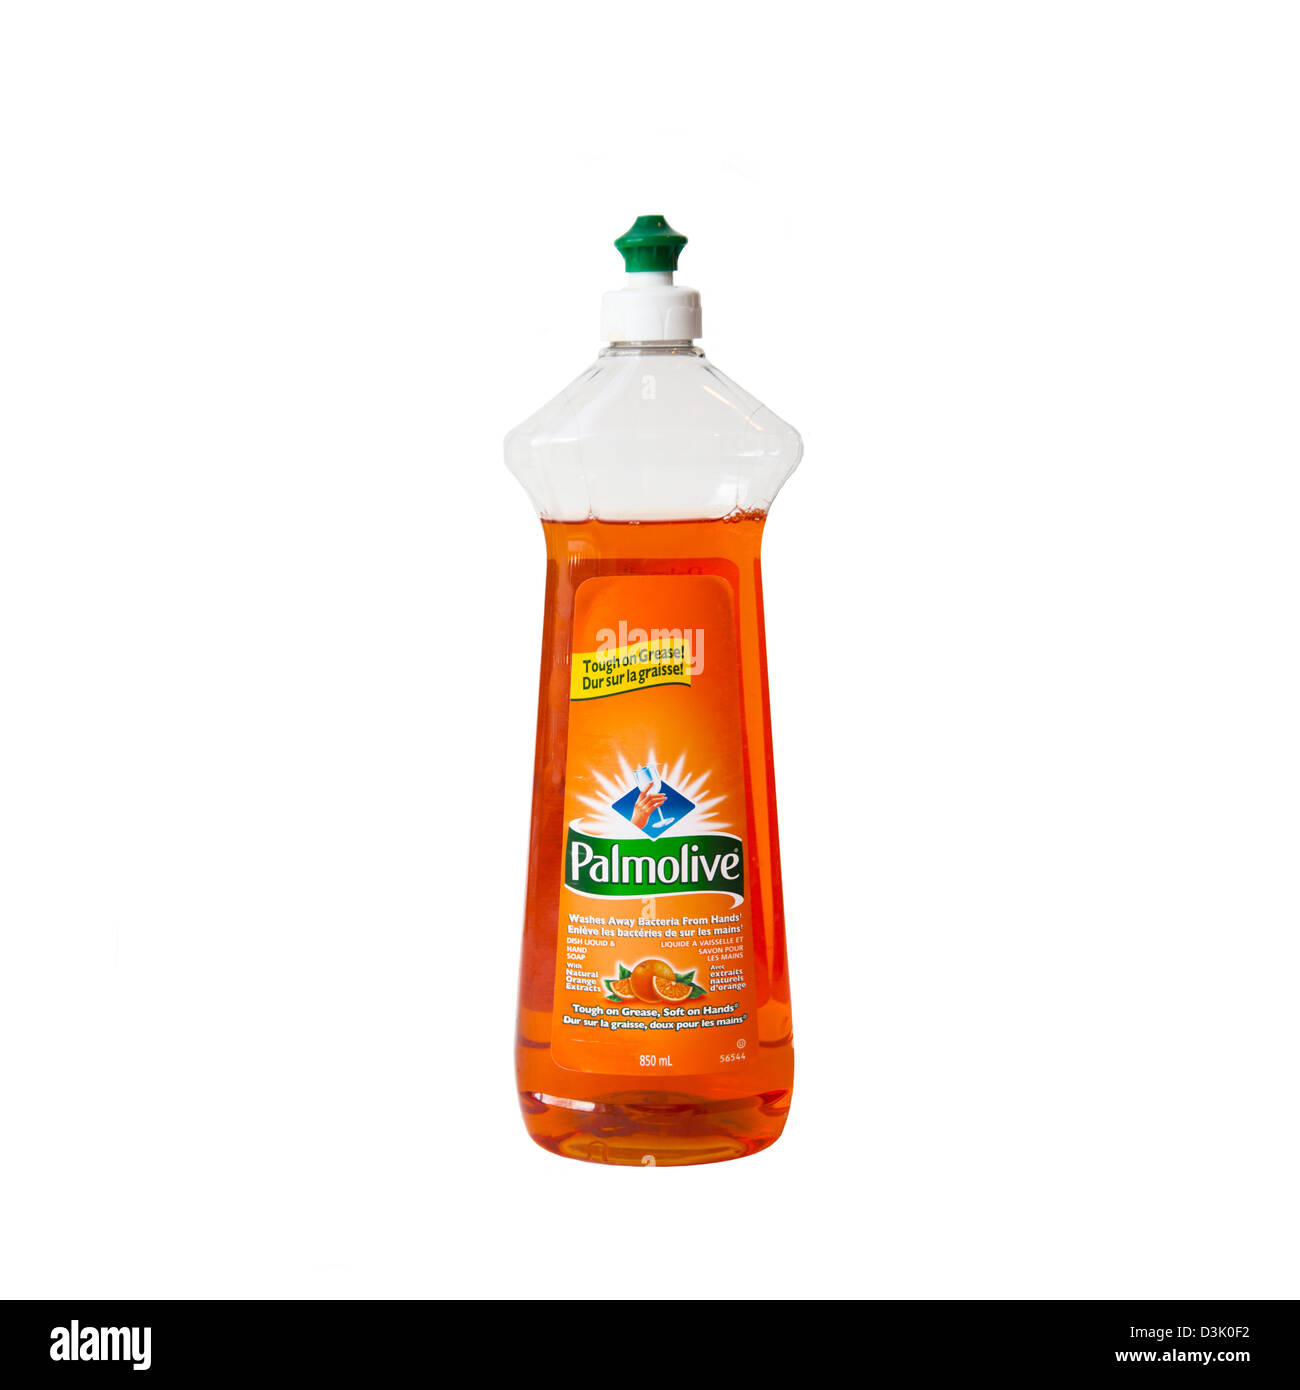 palmolive stock photos amp palmolive stock images alamy